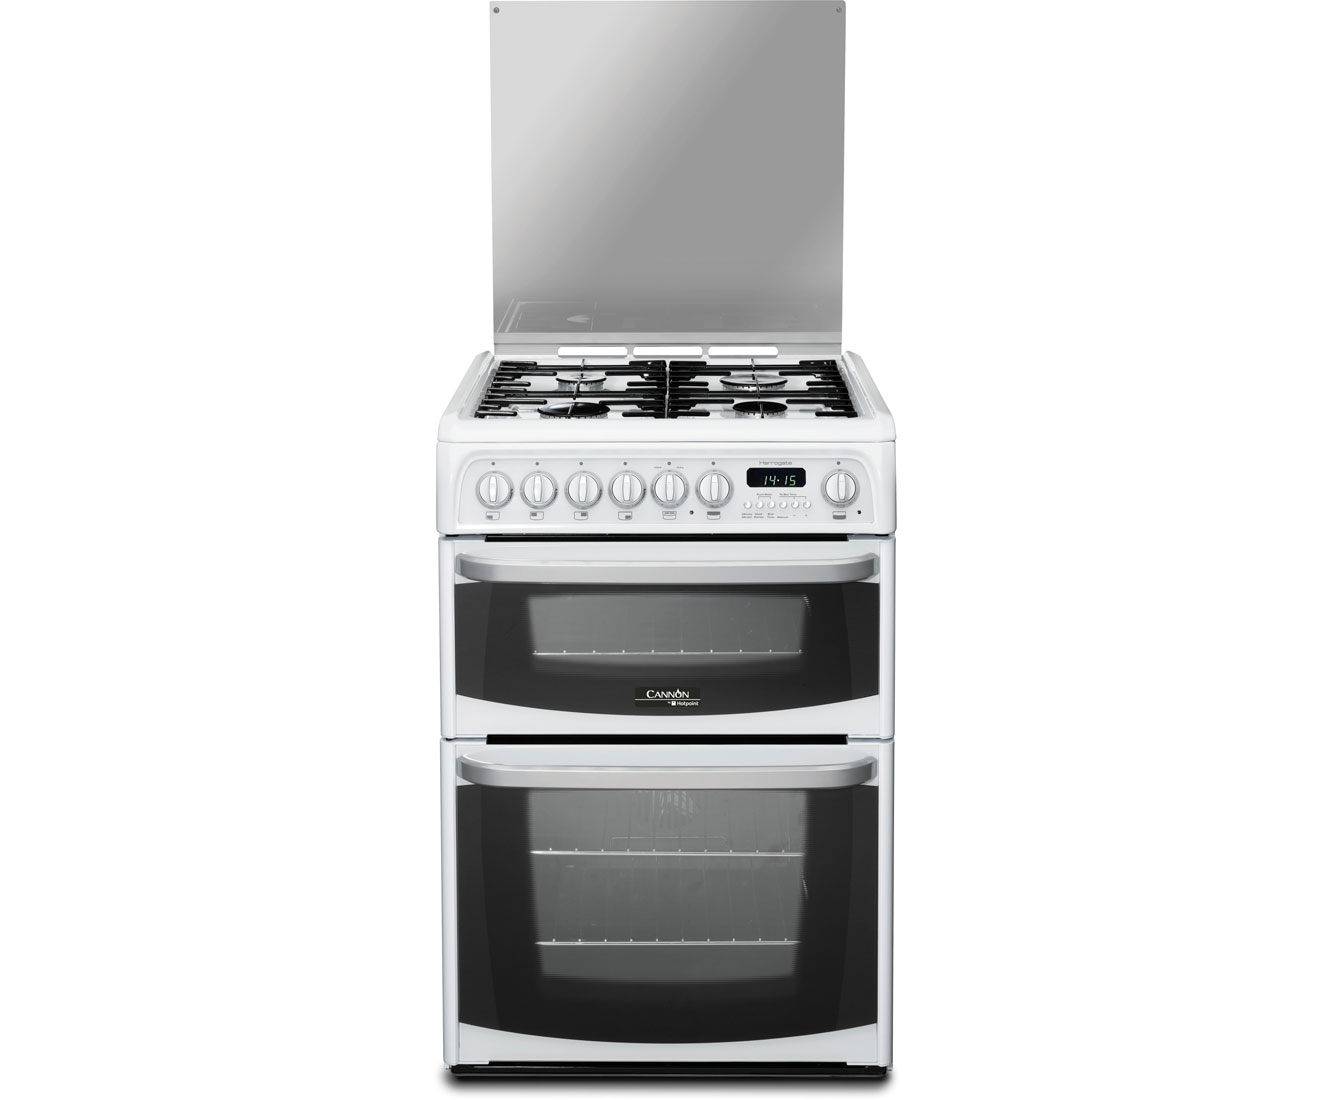 ch60dhwfs wh cannon dual fuel cooker white ao com rh ao com Verona Dual Fuel Double Oven Double Oven Dual Fuel Range